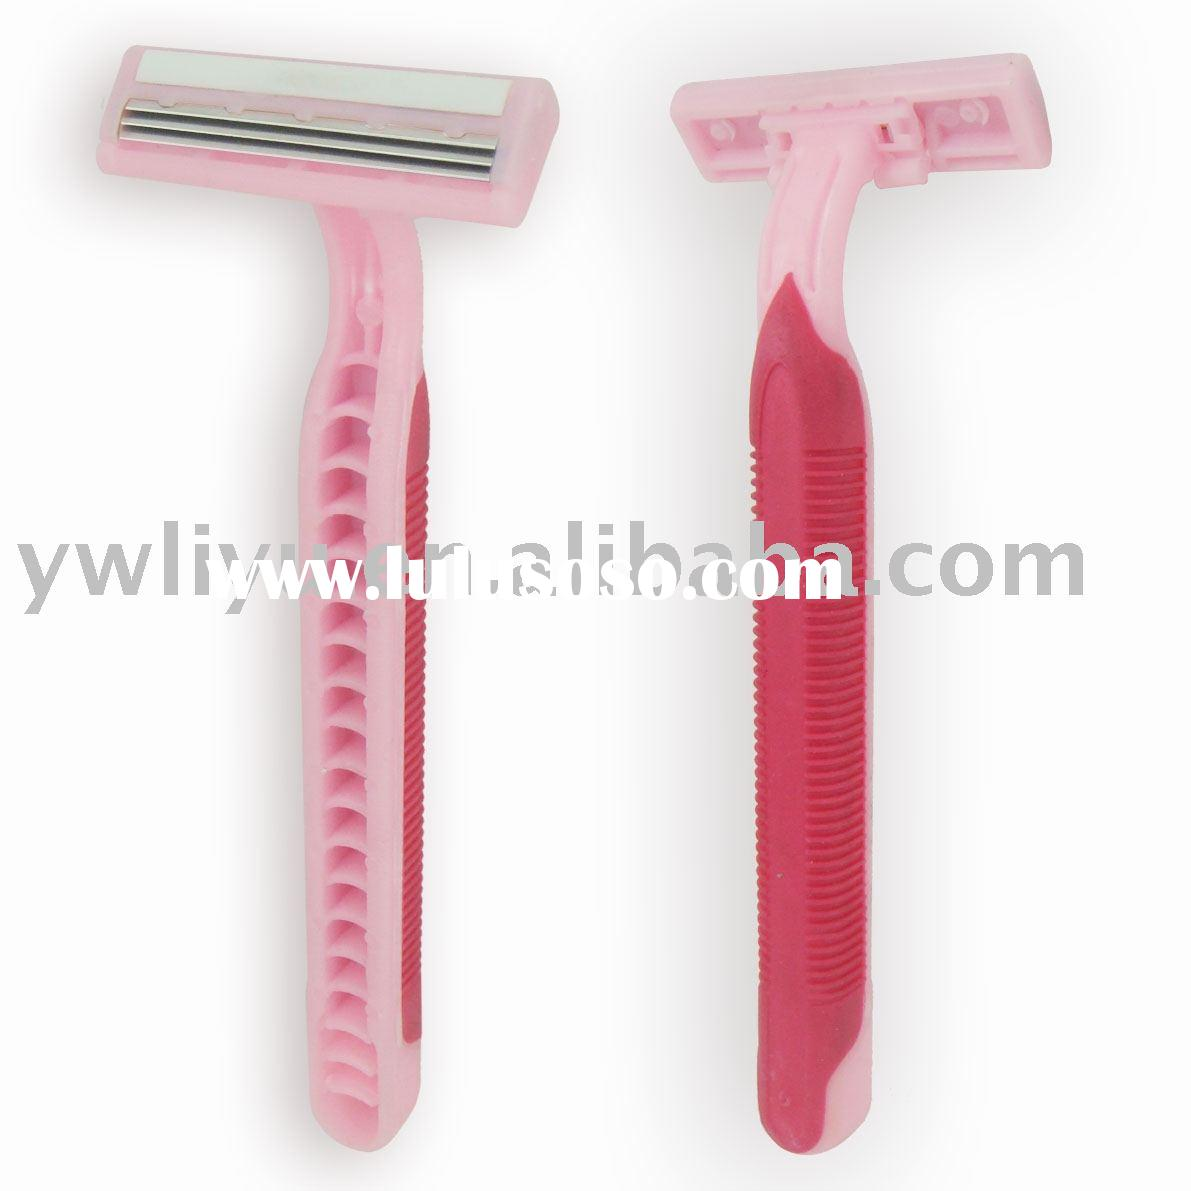 women disposable razor,triple blade disposable razor with lubricant